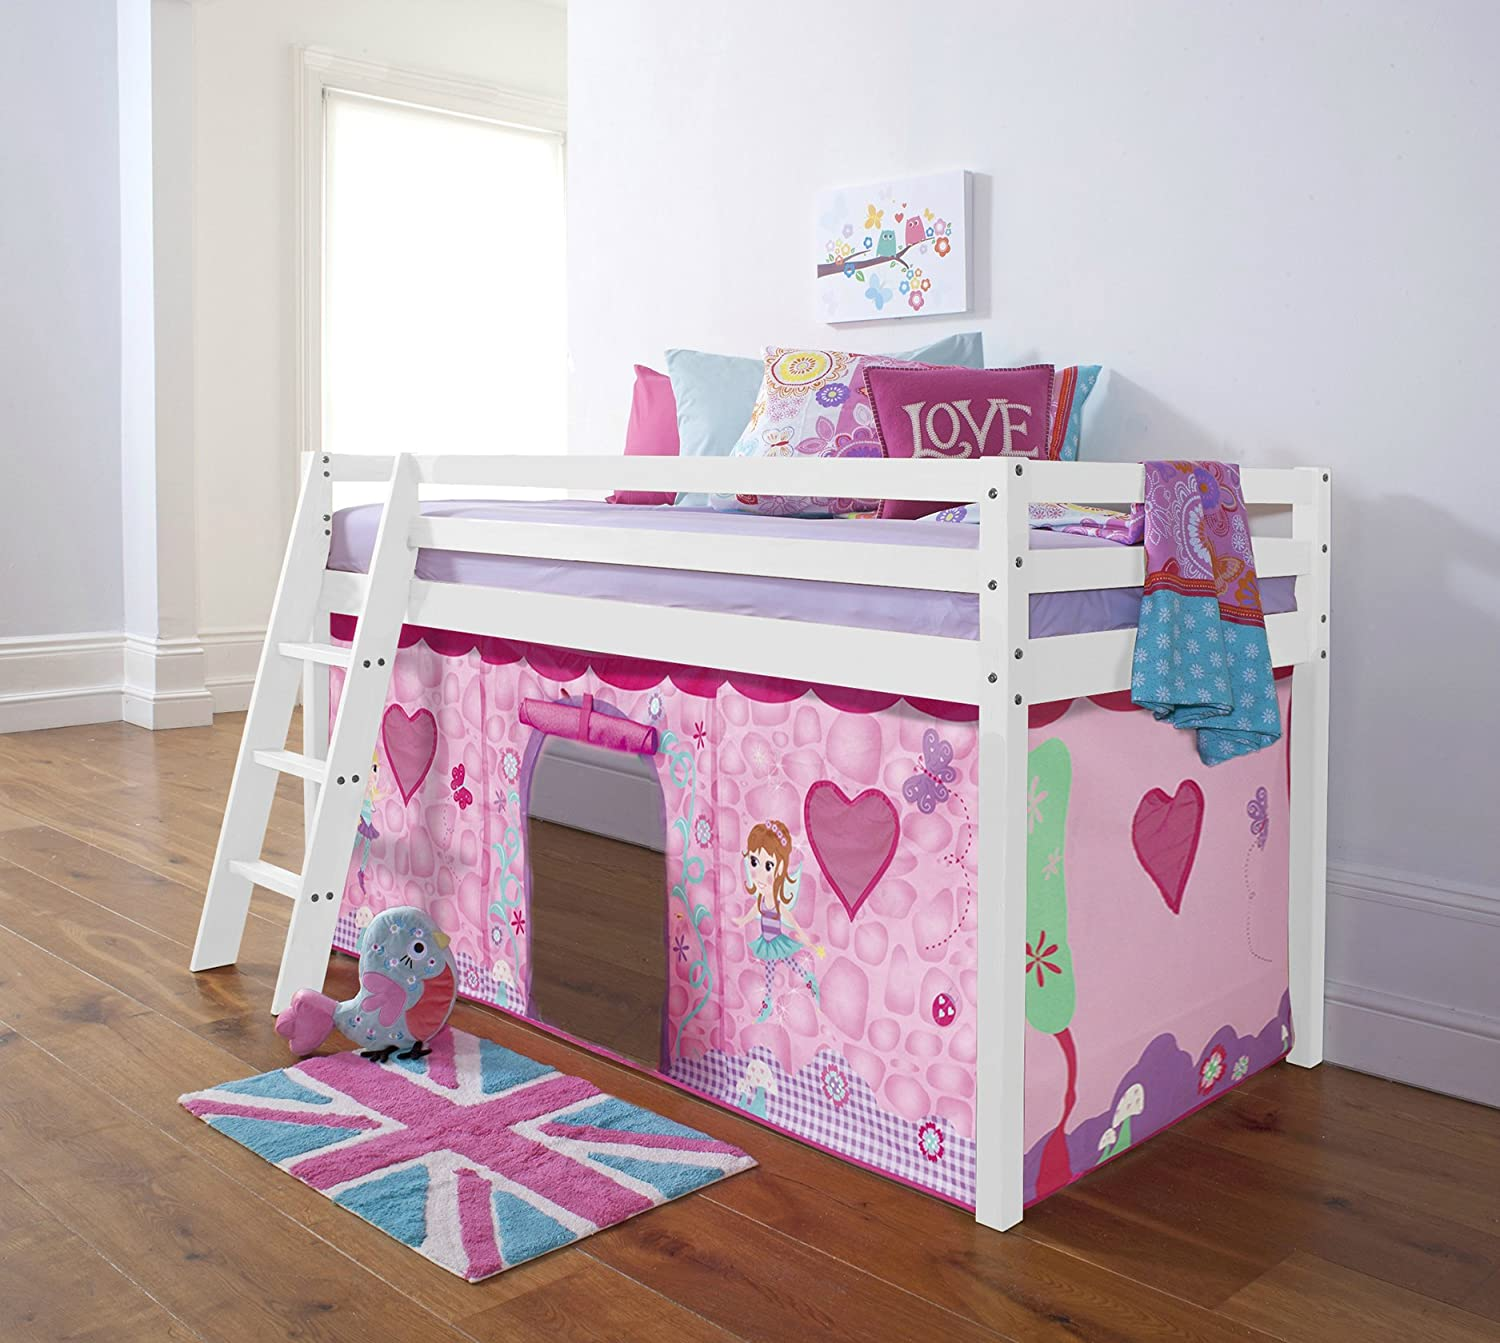 Cabin Bed with Fairies Tent in White with Tent (578WG-FAIRIES) Noa & Nani